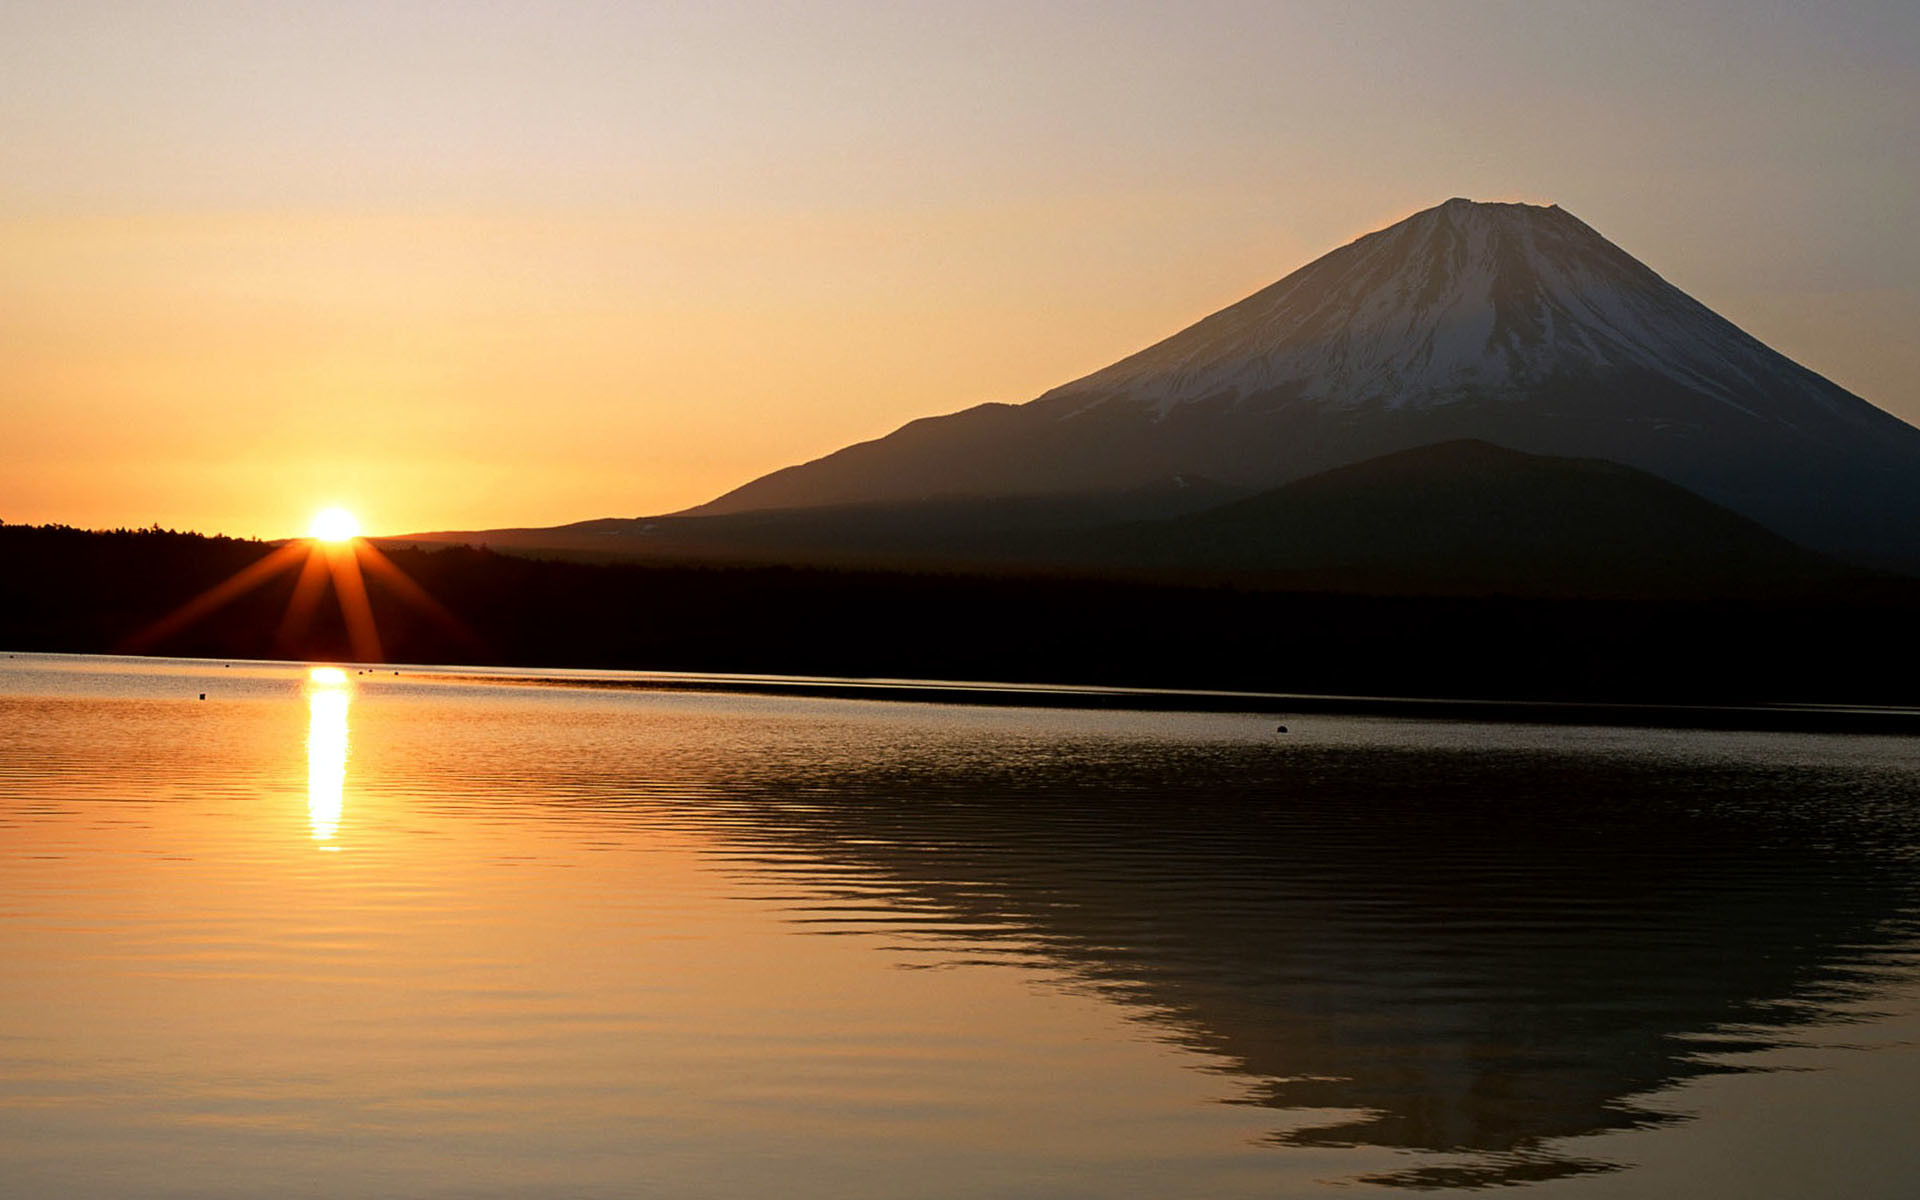 Cool mountain backgrounds with sunset